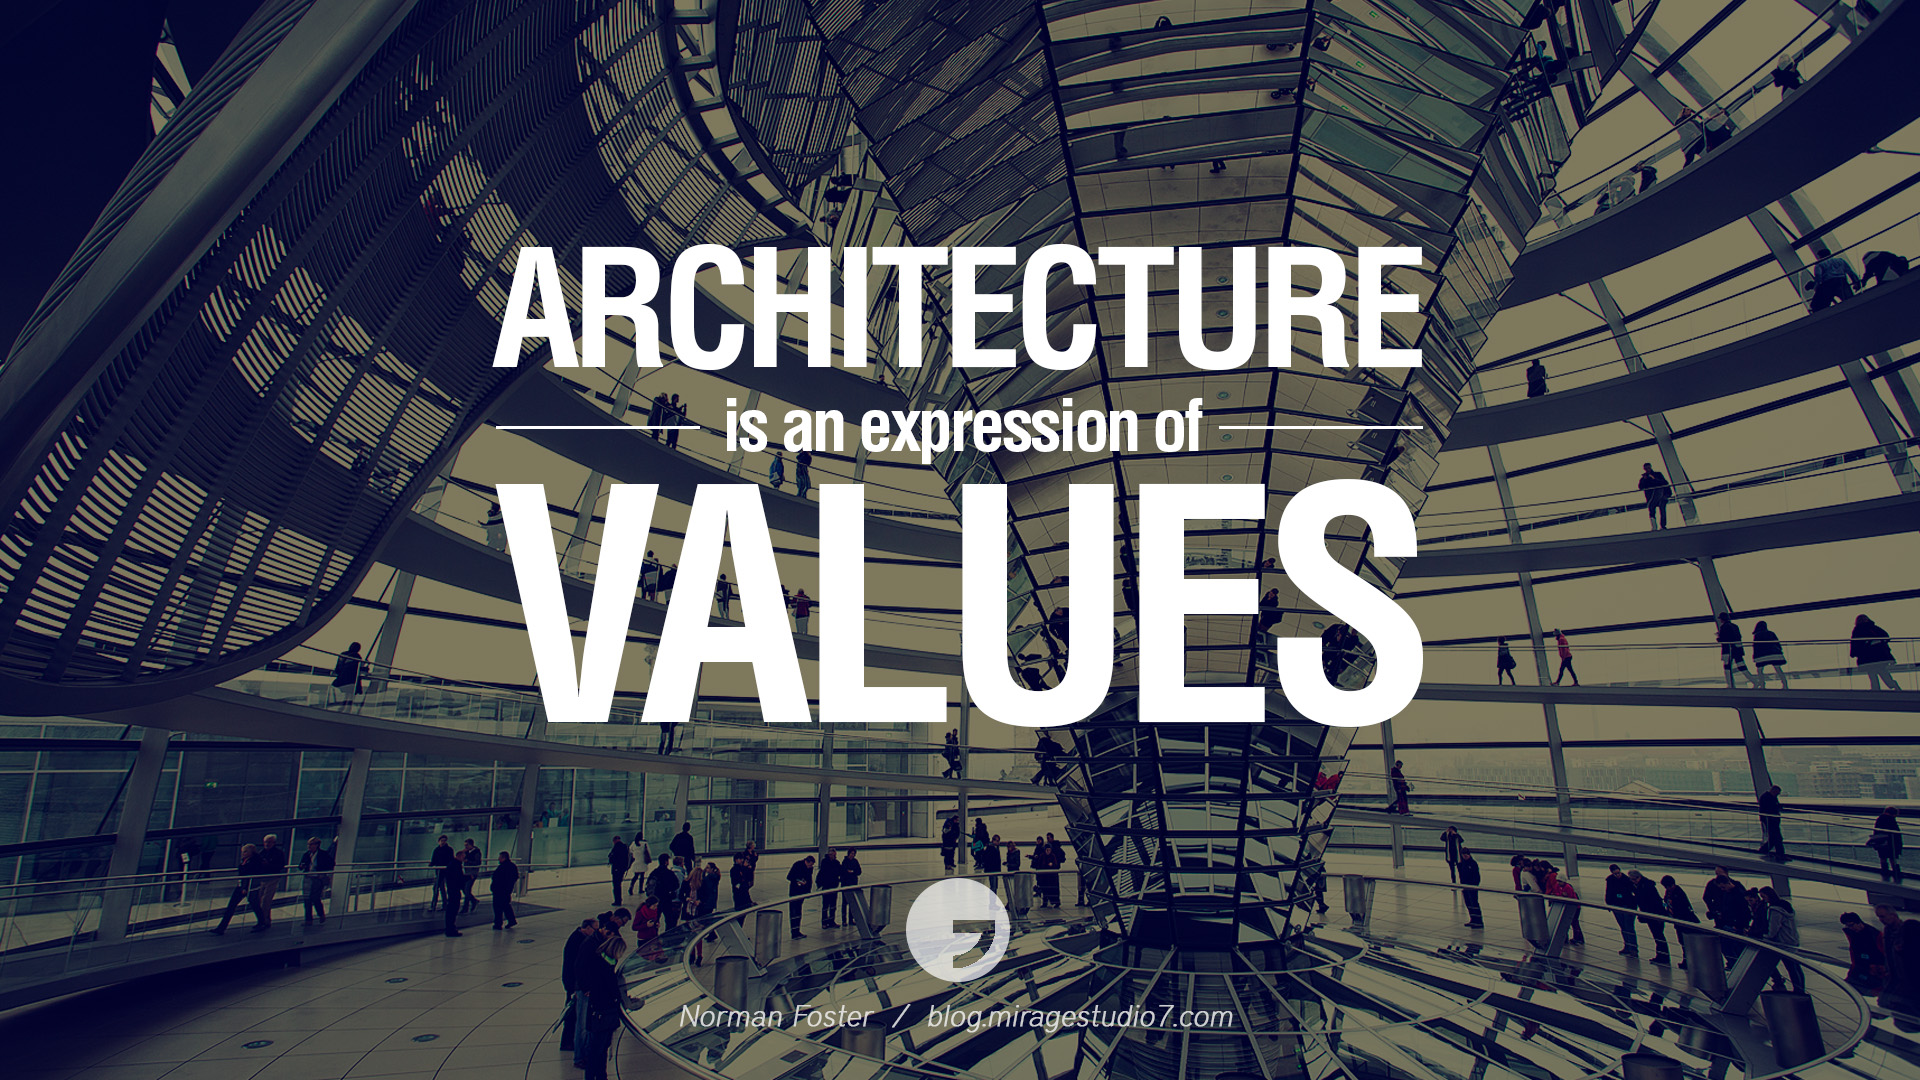 architecture quotes famous architect inspirational expression greek architects light quotesgram interior values most mirror important why